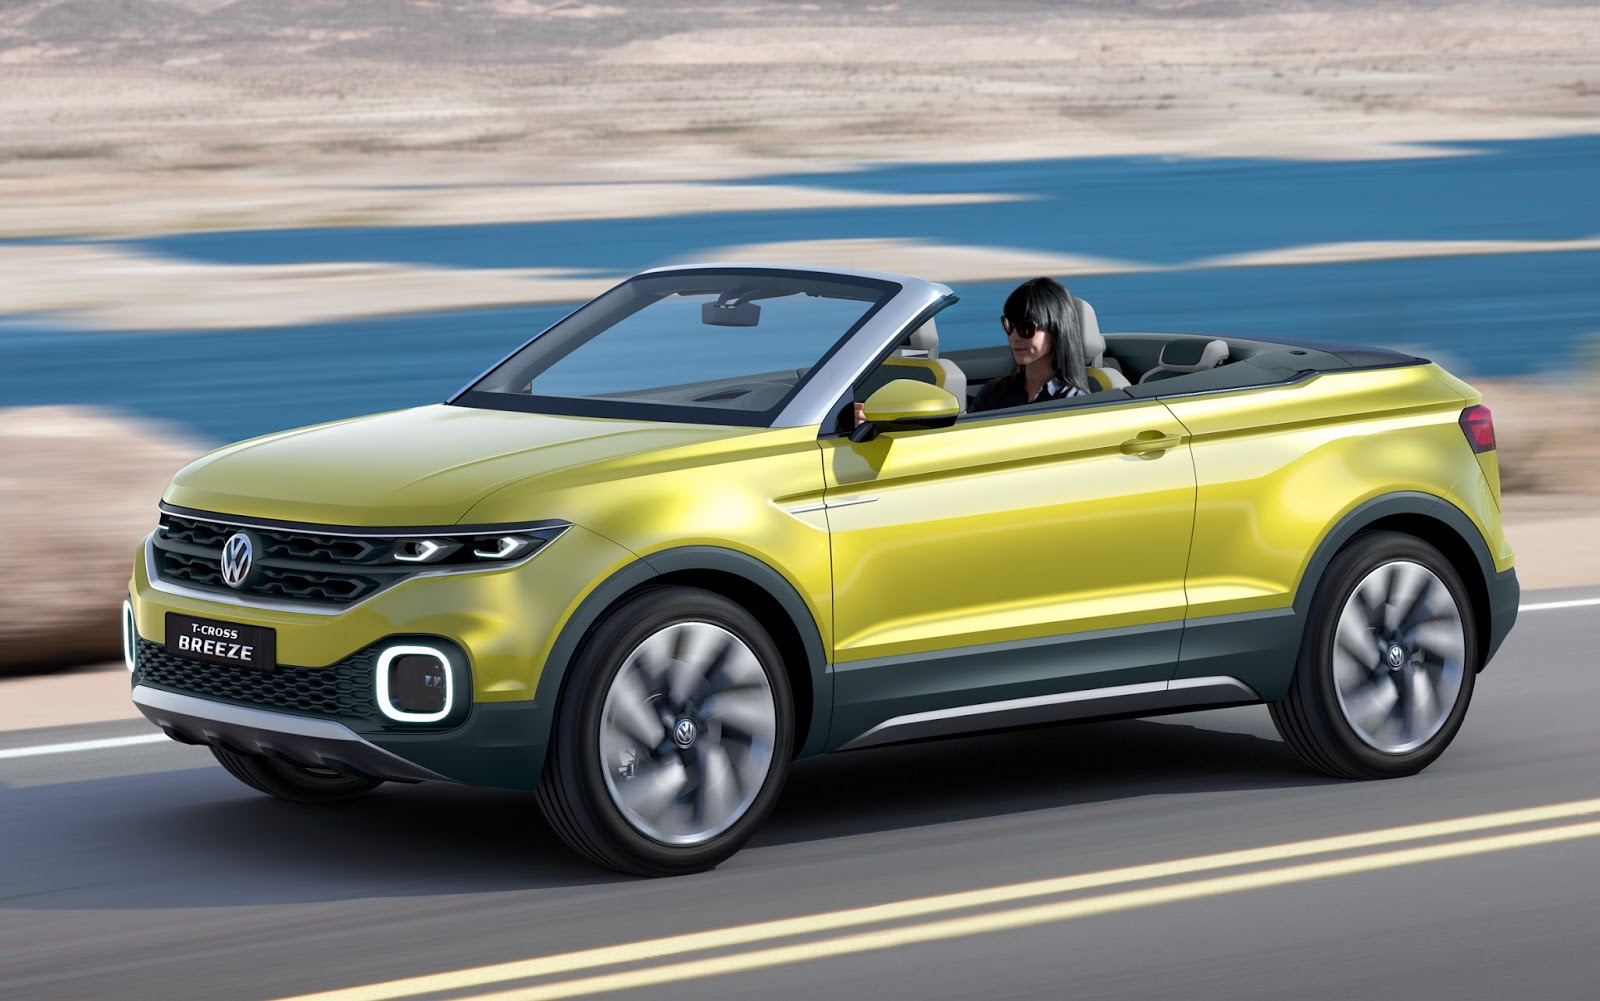 Vw T Cross Breeze Concept Is A Topless Juke Sized